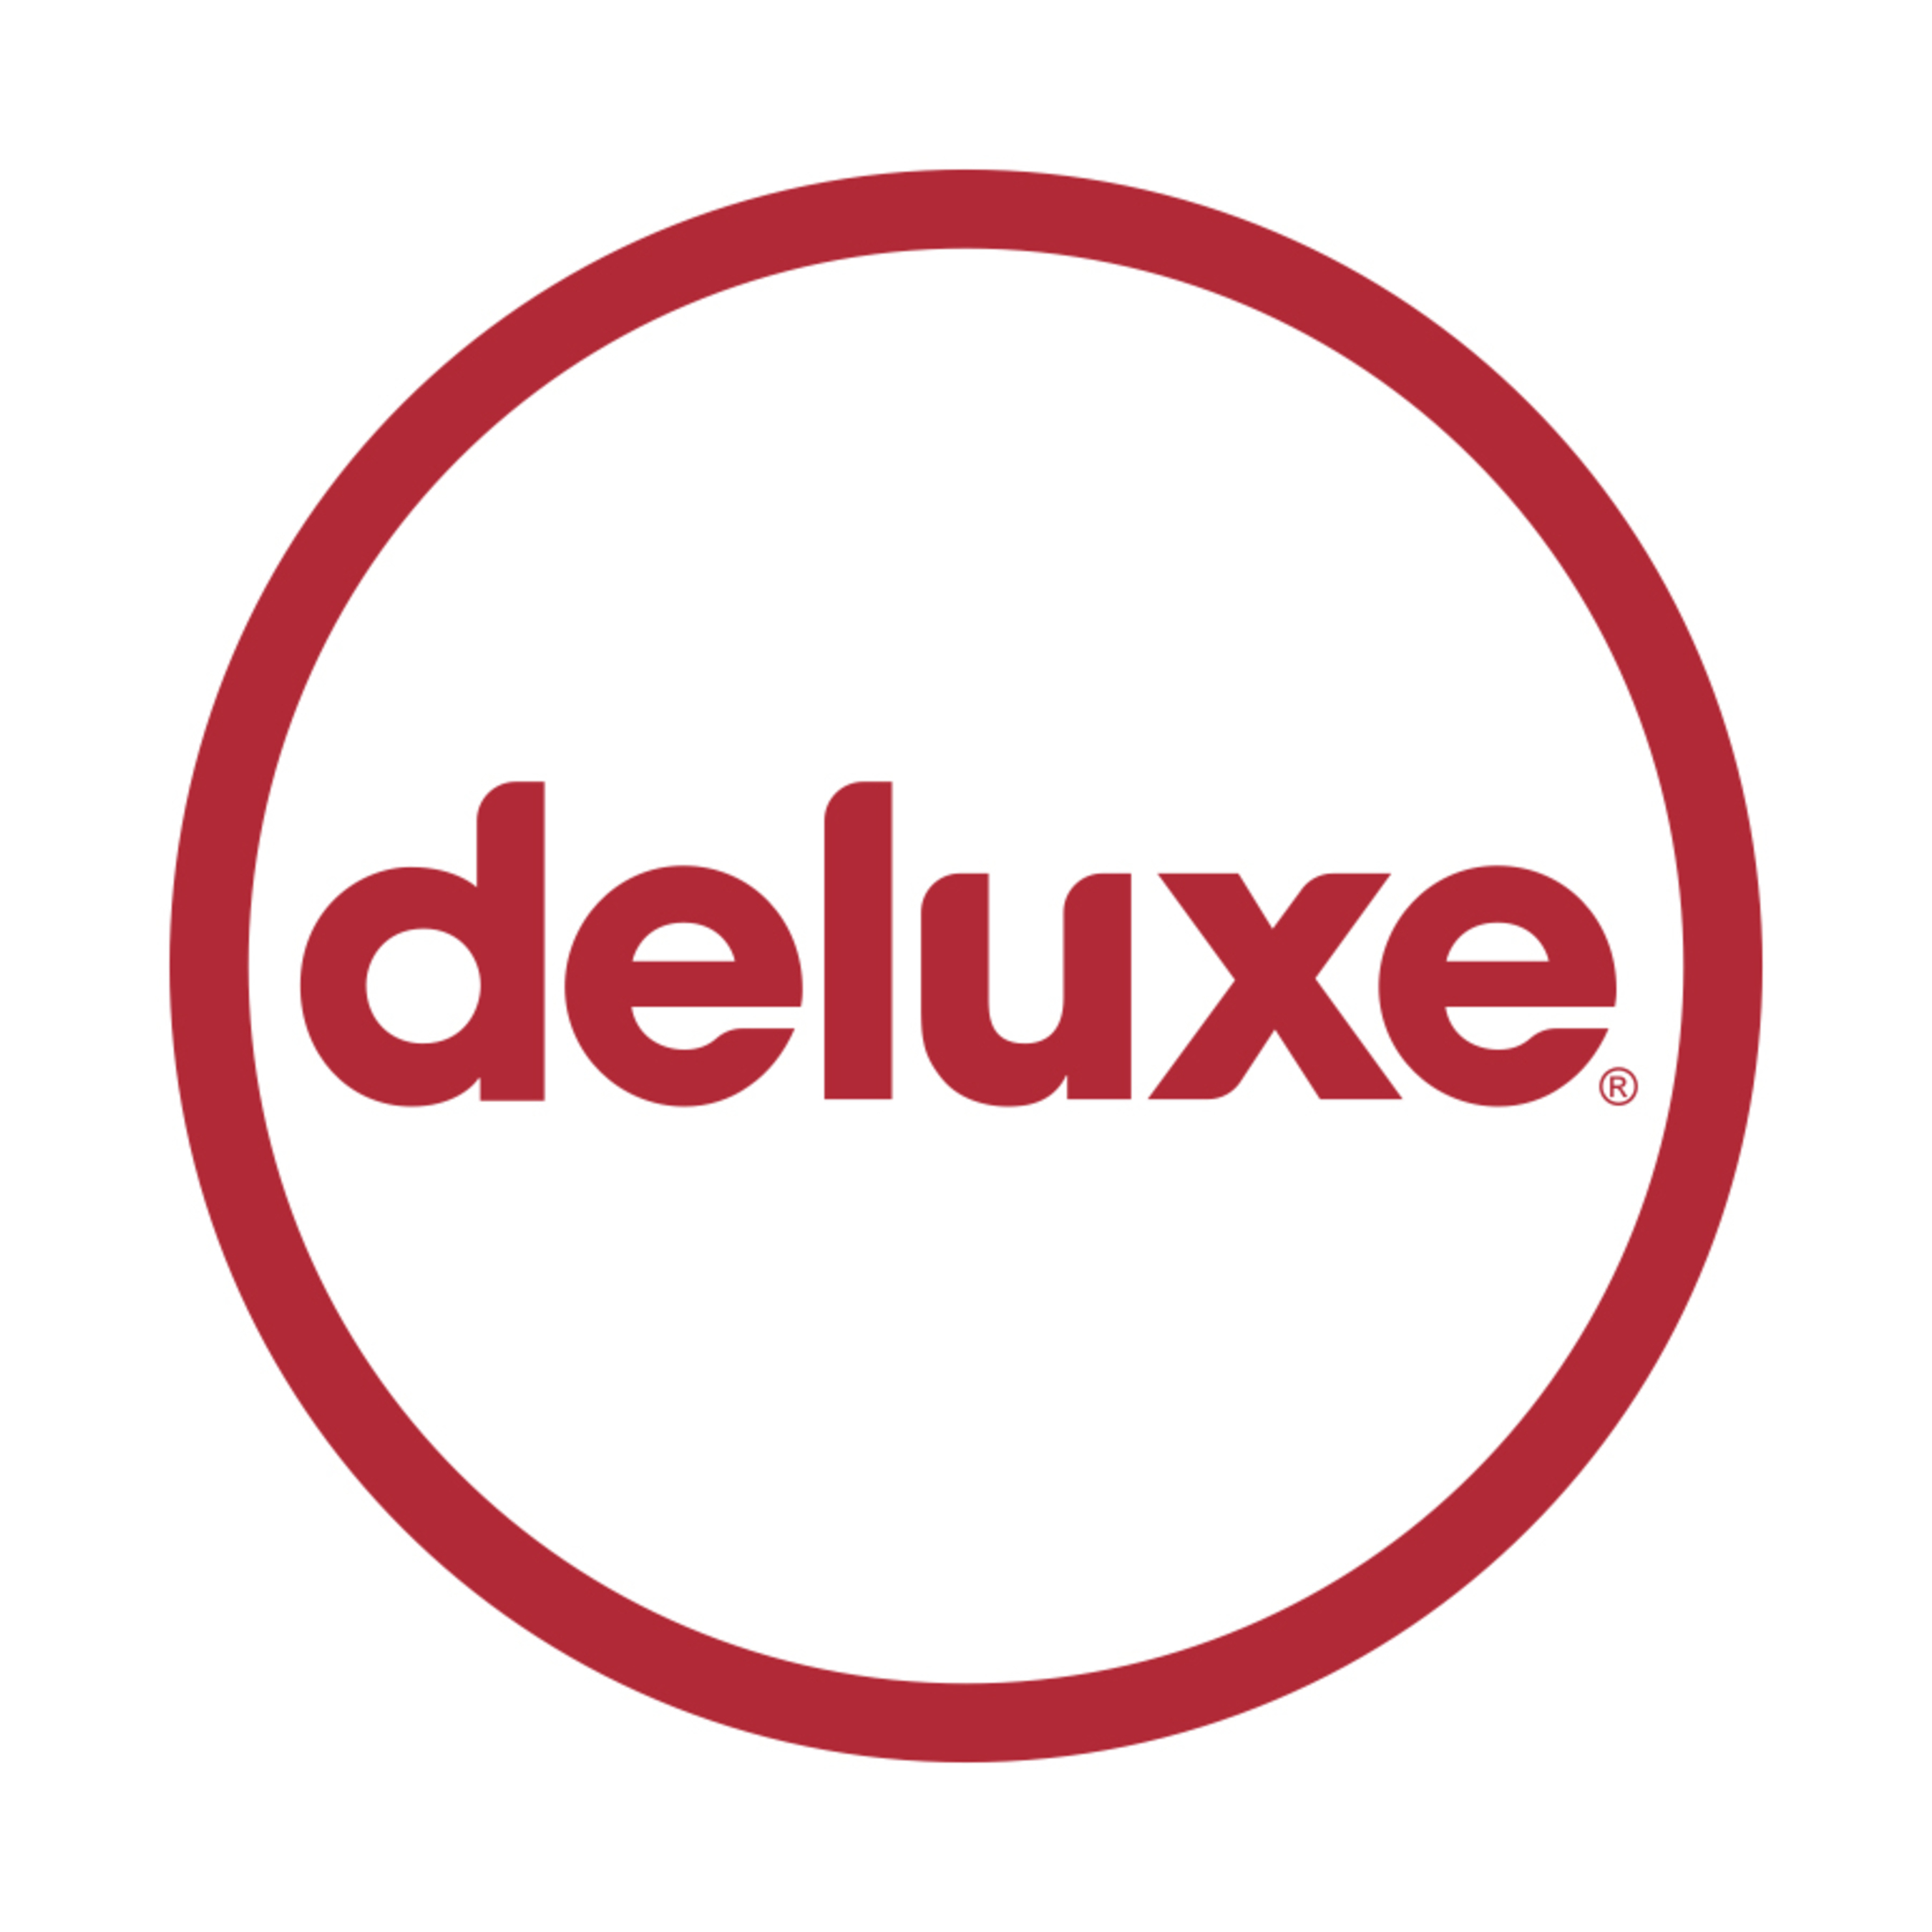 Deluxe Entertainment Services Group Inc. is a global leader in media and entertainment services for film, video and online content, from capture to consumption.